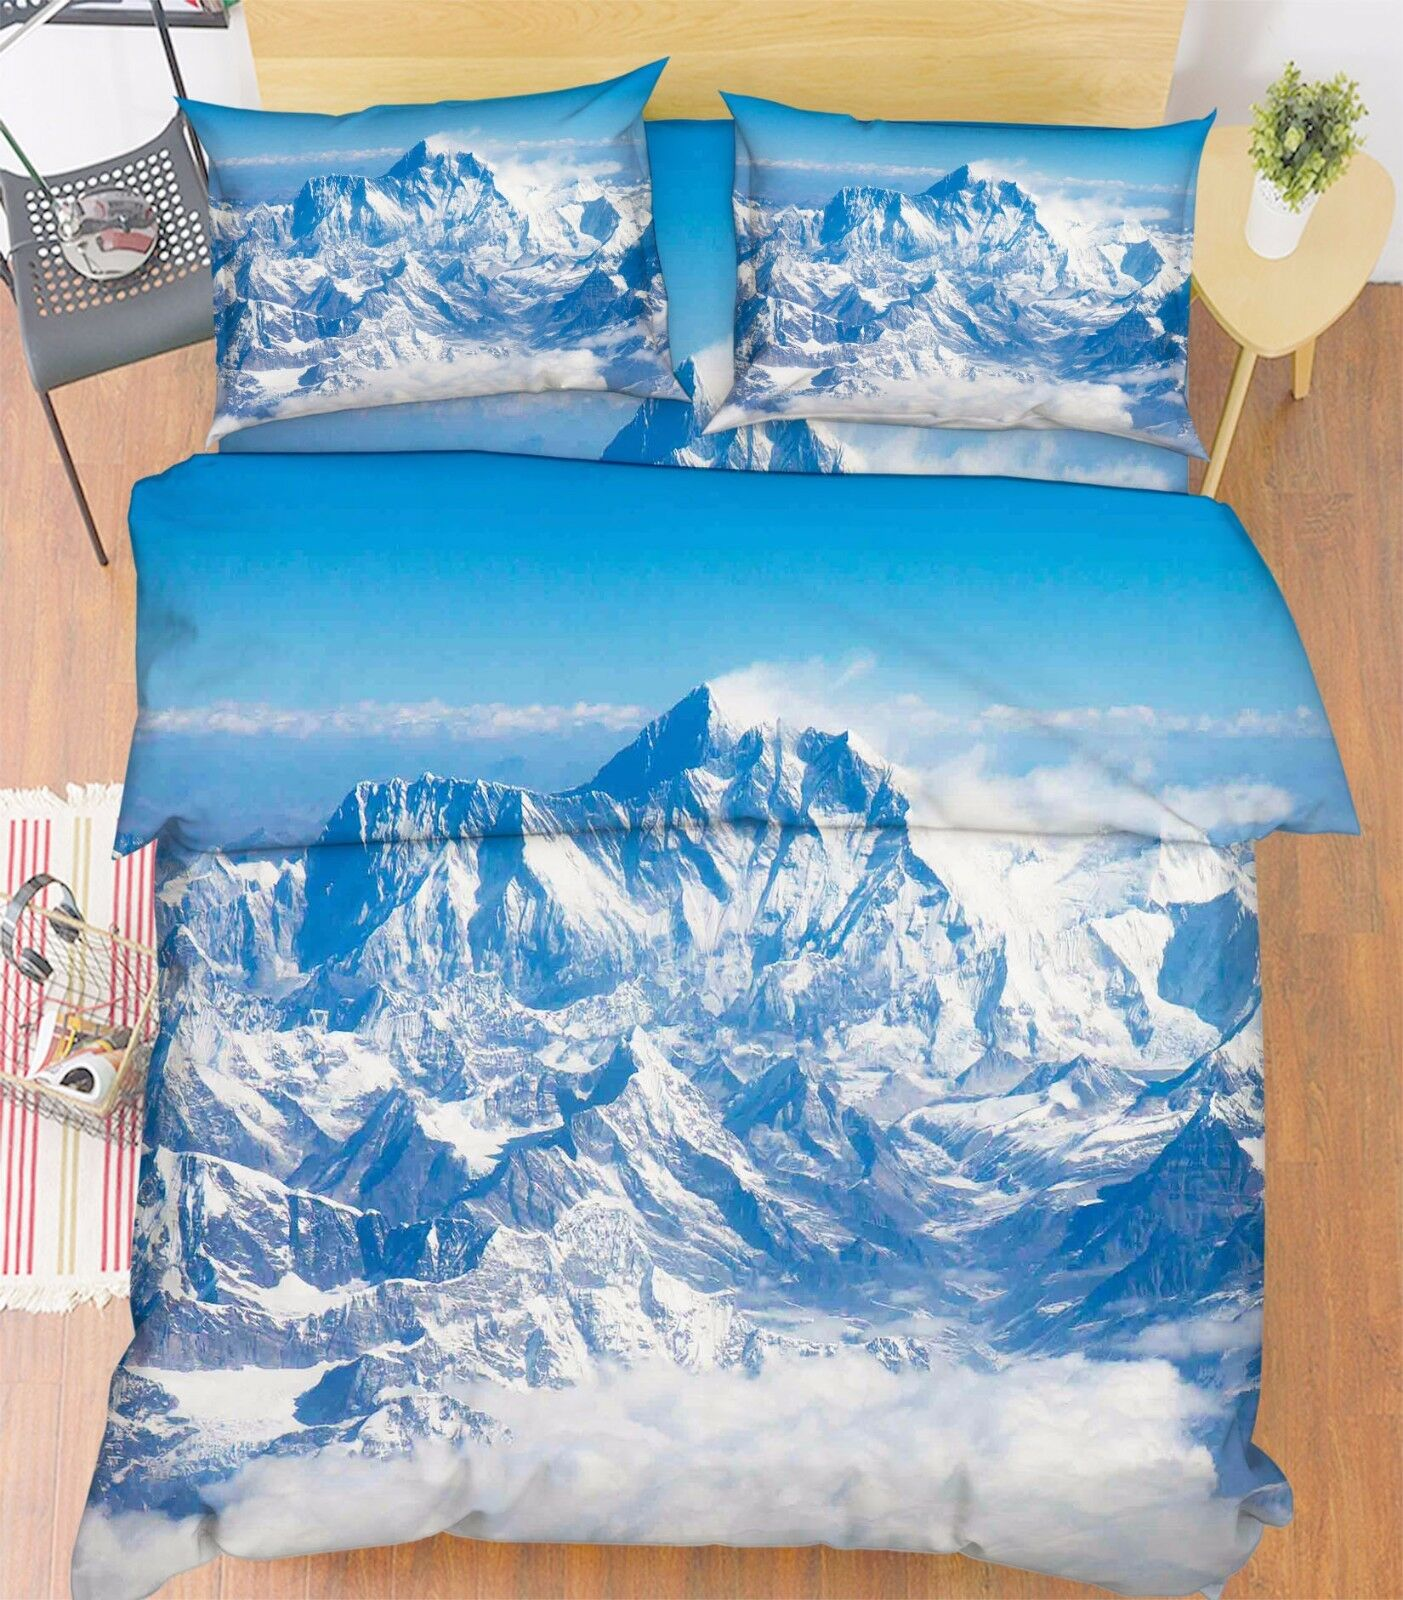 3D Berg Muster 827 Bett Kissenbezüge steppen Duvet Decken Set Single DE Kyra